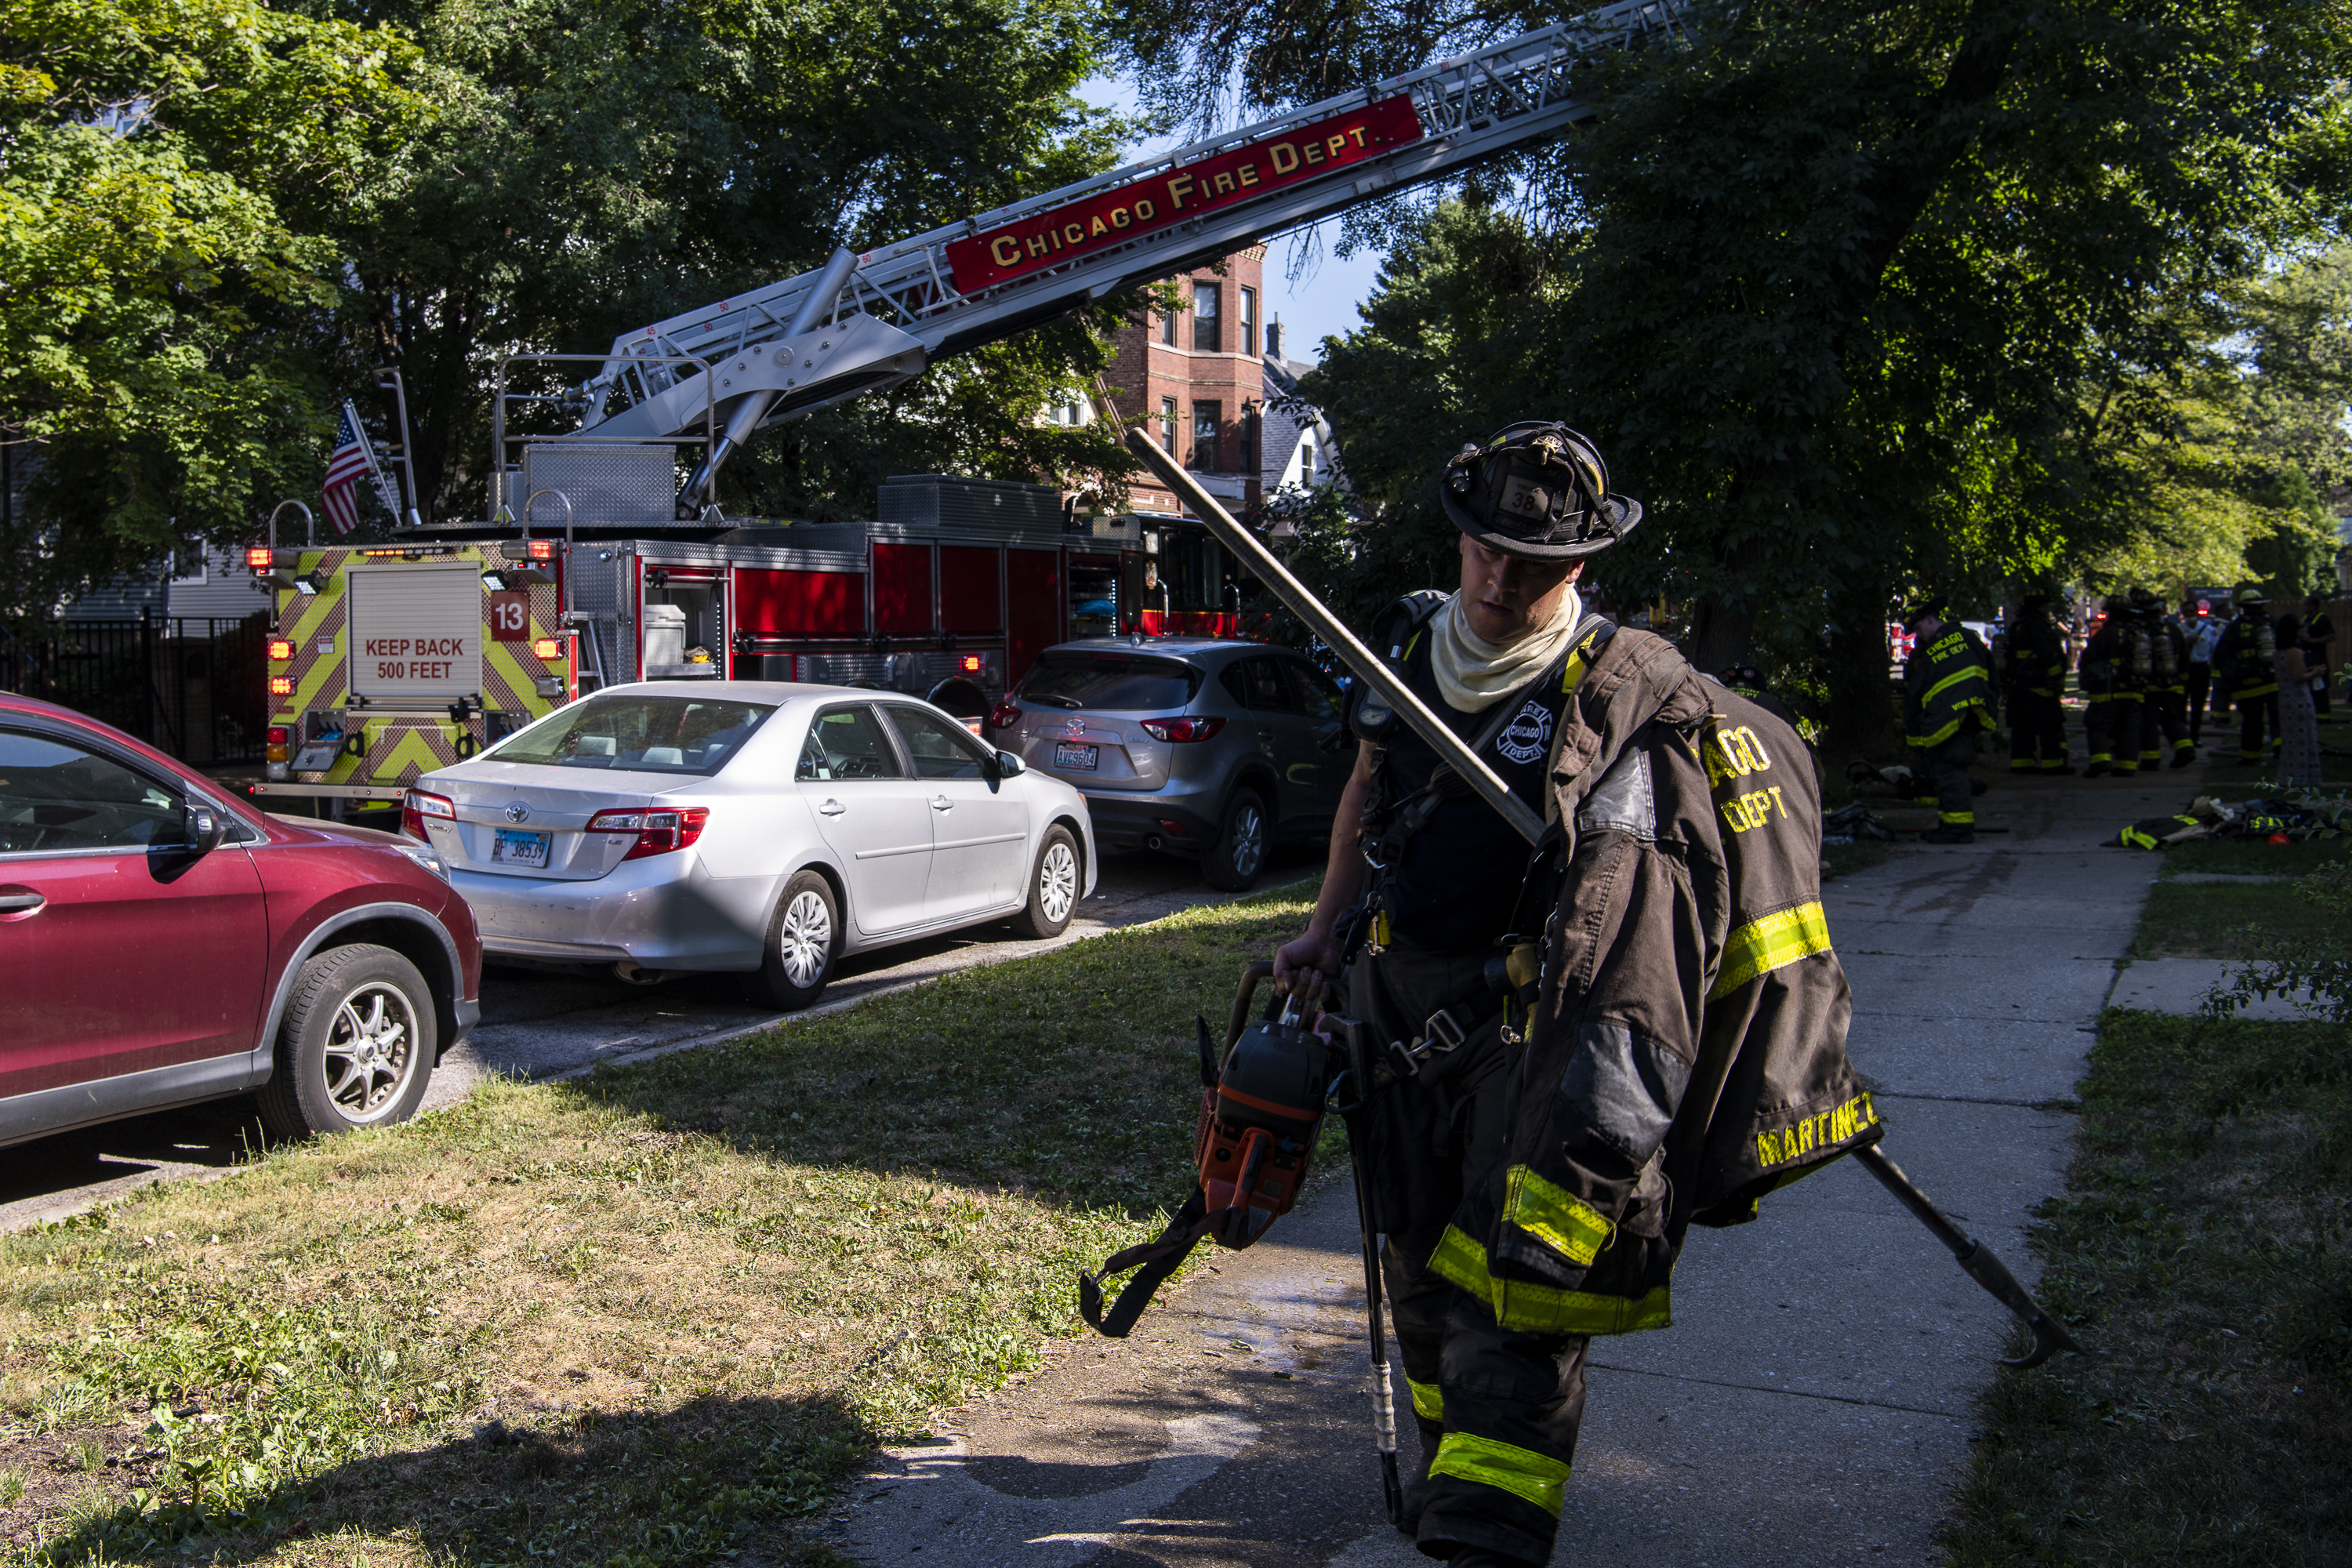 Chicago firefighters respond to a blaze at a home in the 3300 block of North Albany in the Avondale neighborhood, Thursday, Aug. 20, 2020. | Tyler LaRiviere/Sun-Times